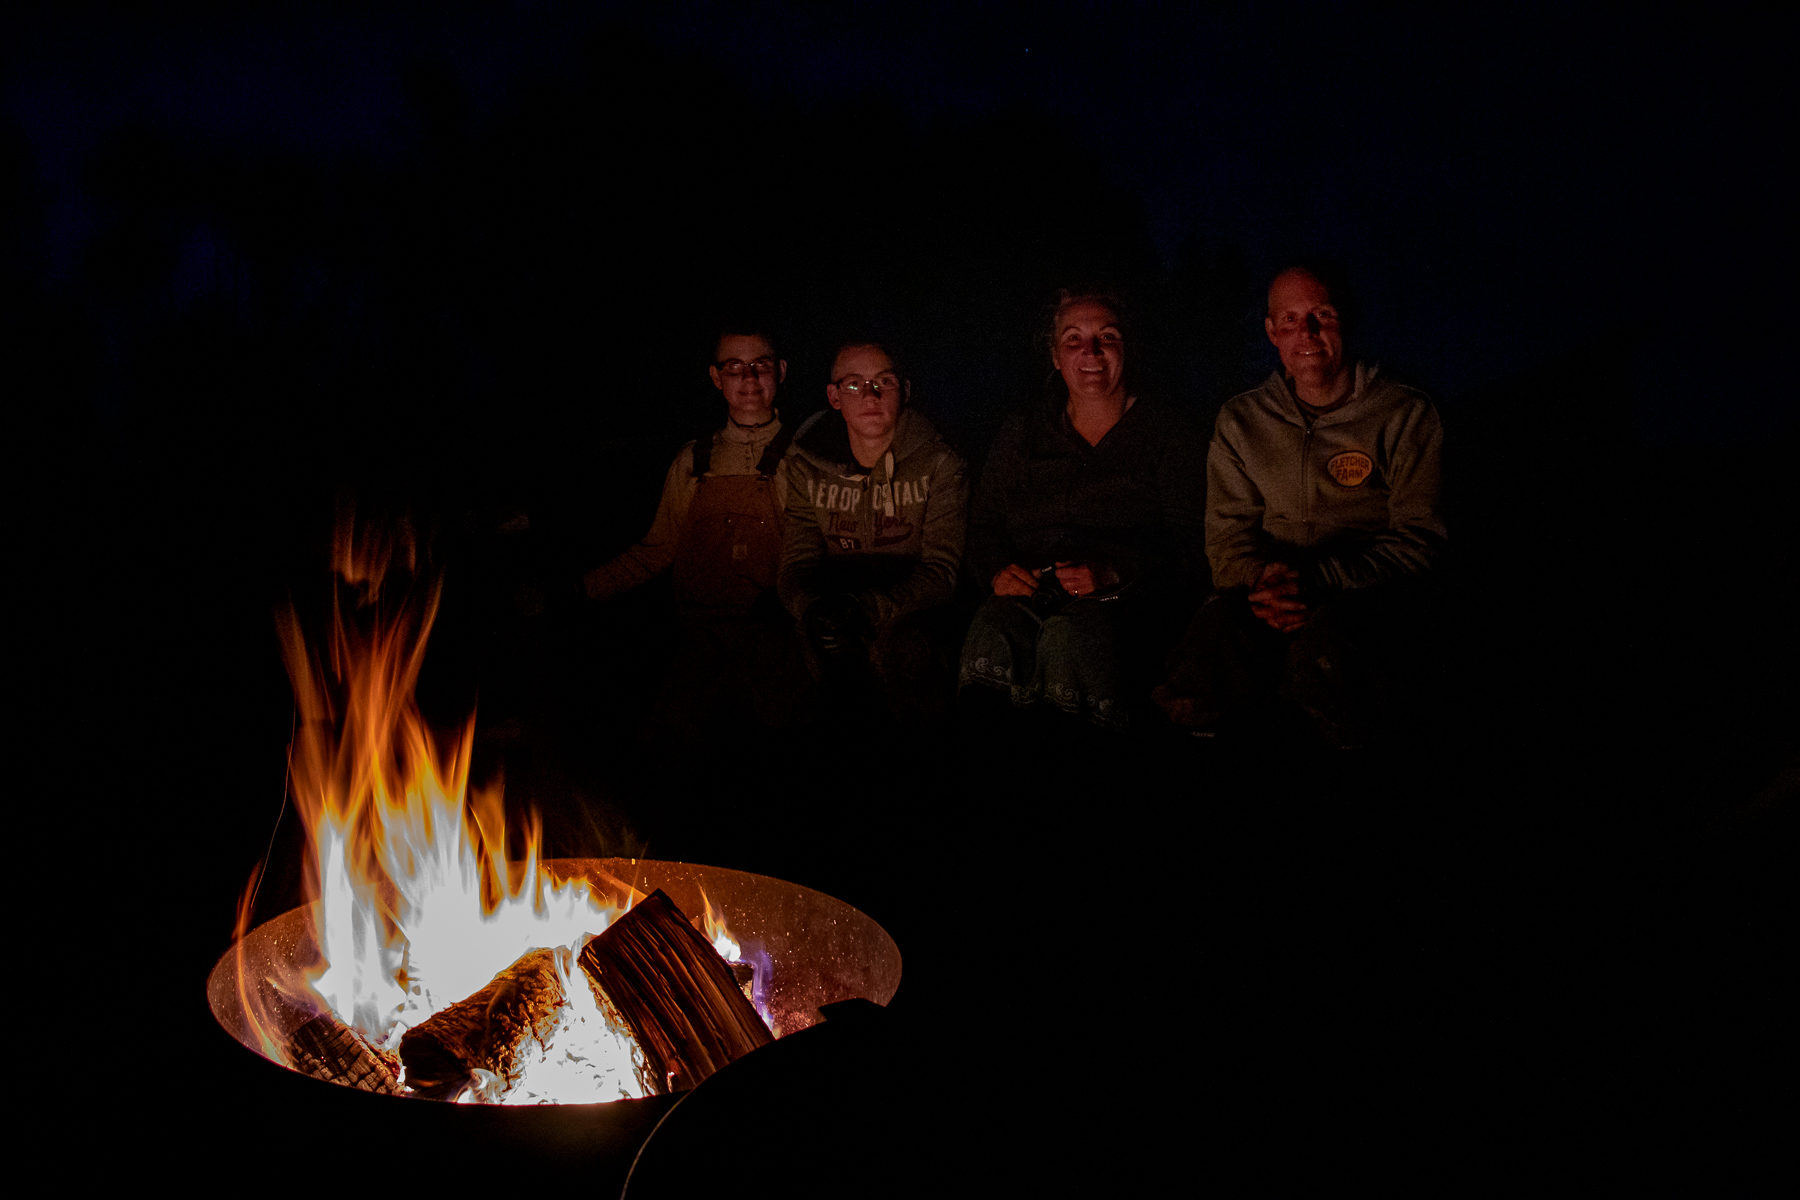 Cozy atmosphere around the campfire.